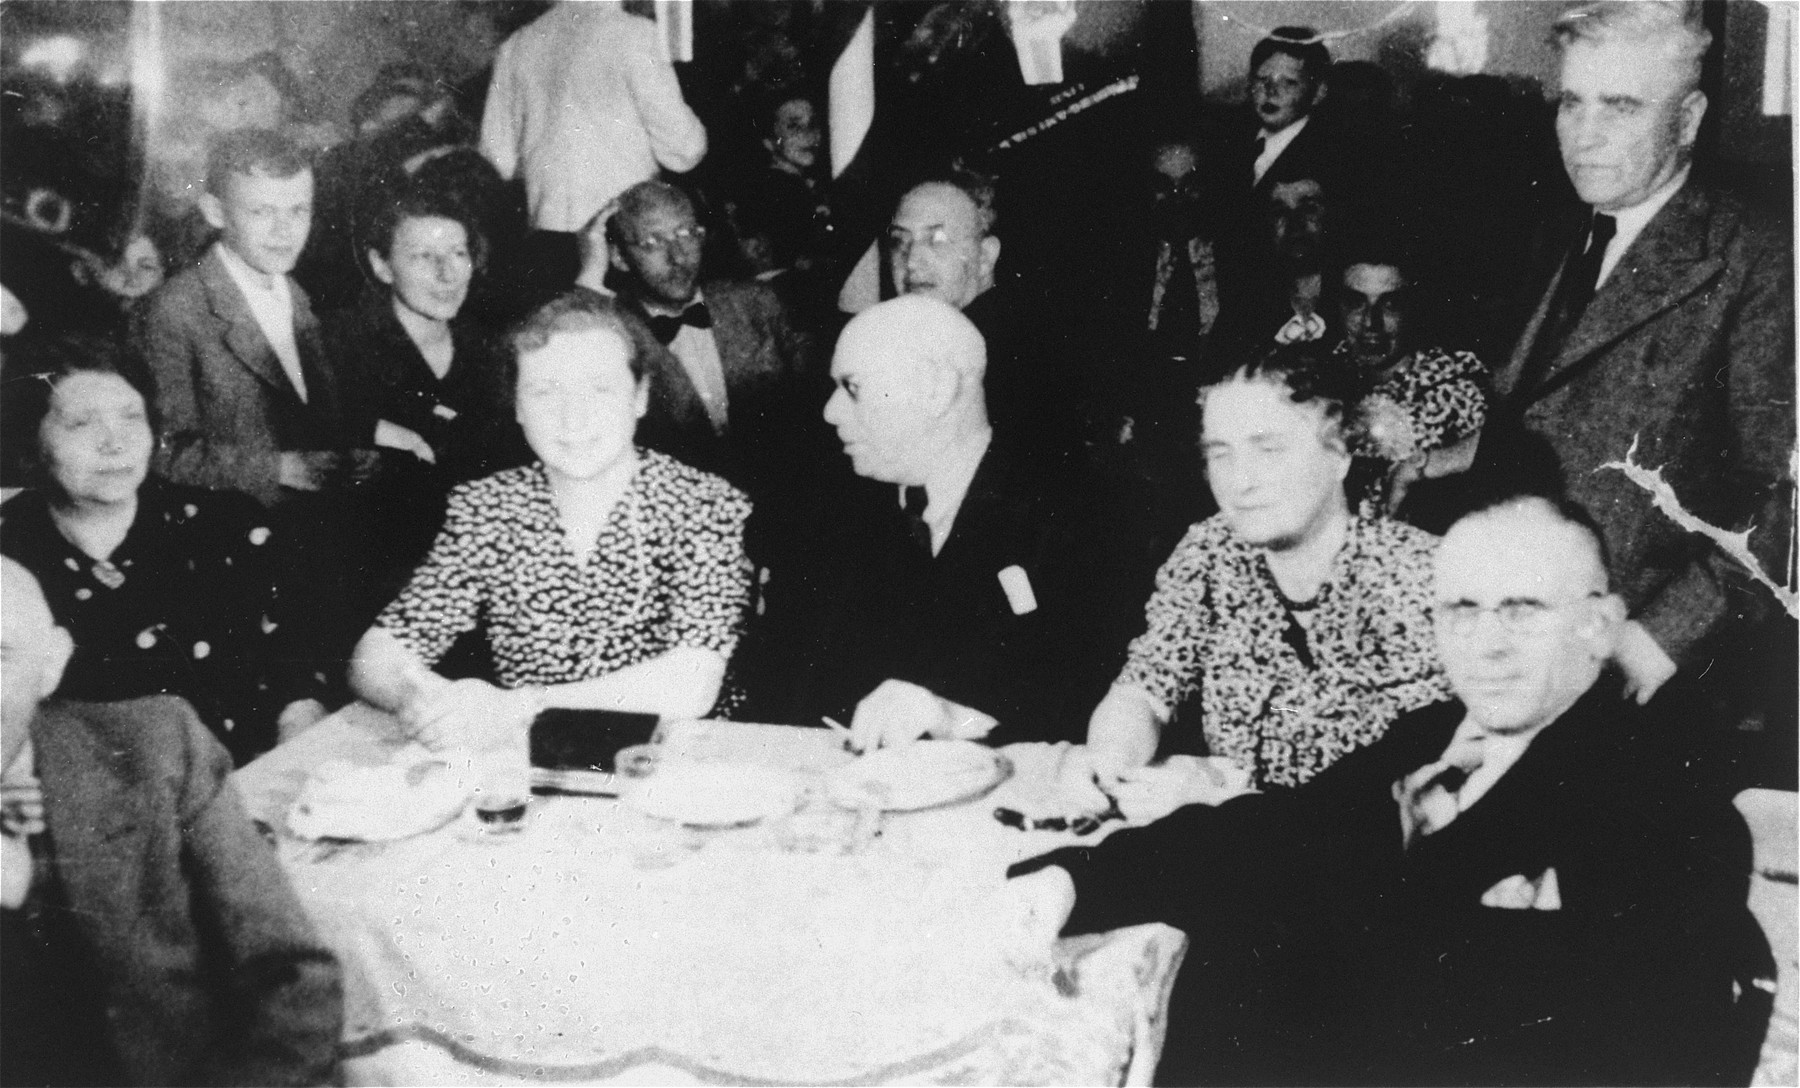 St. Louis passengers sit at a table in the ship's dining room.   Josef Josph is pictured on the right; his wife Lily is next to him.  Karl Simon is third from the right at the table and his wife Selma Simon is fourth from the right.